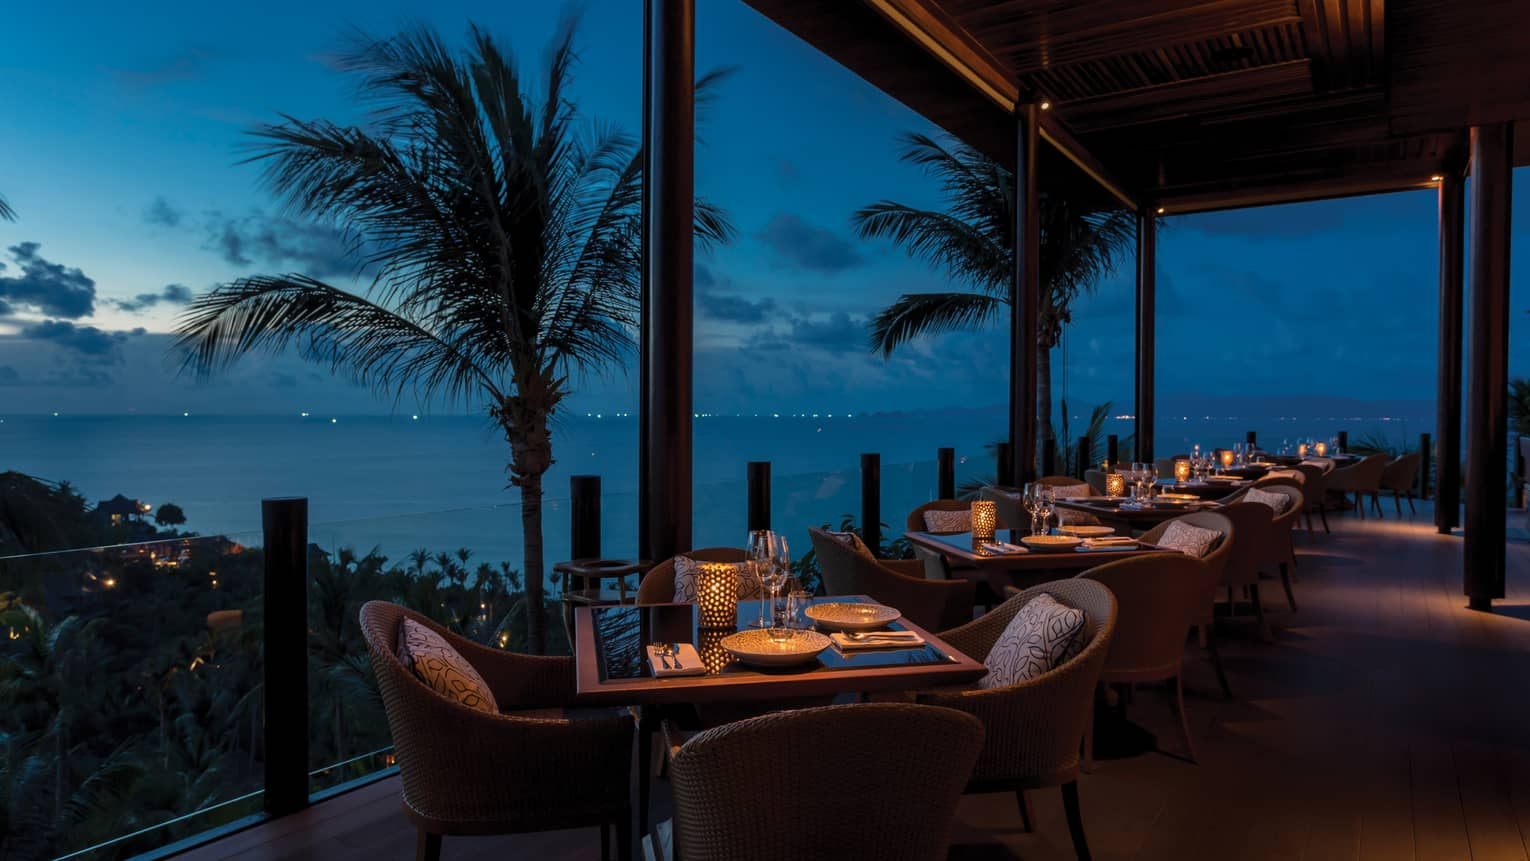 Outdoor terrace at Koh Thai Kitchen in Koh Samui, view of palm trees and Gulf of Thailand